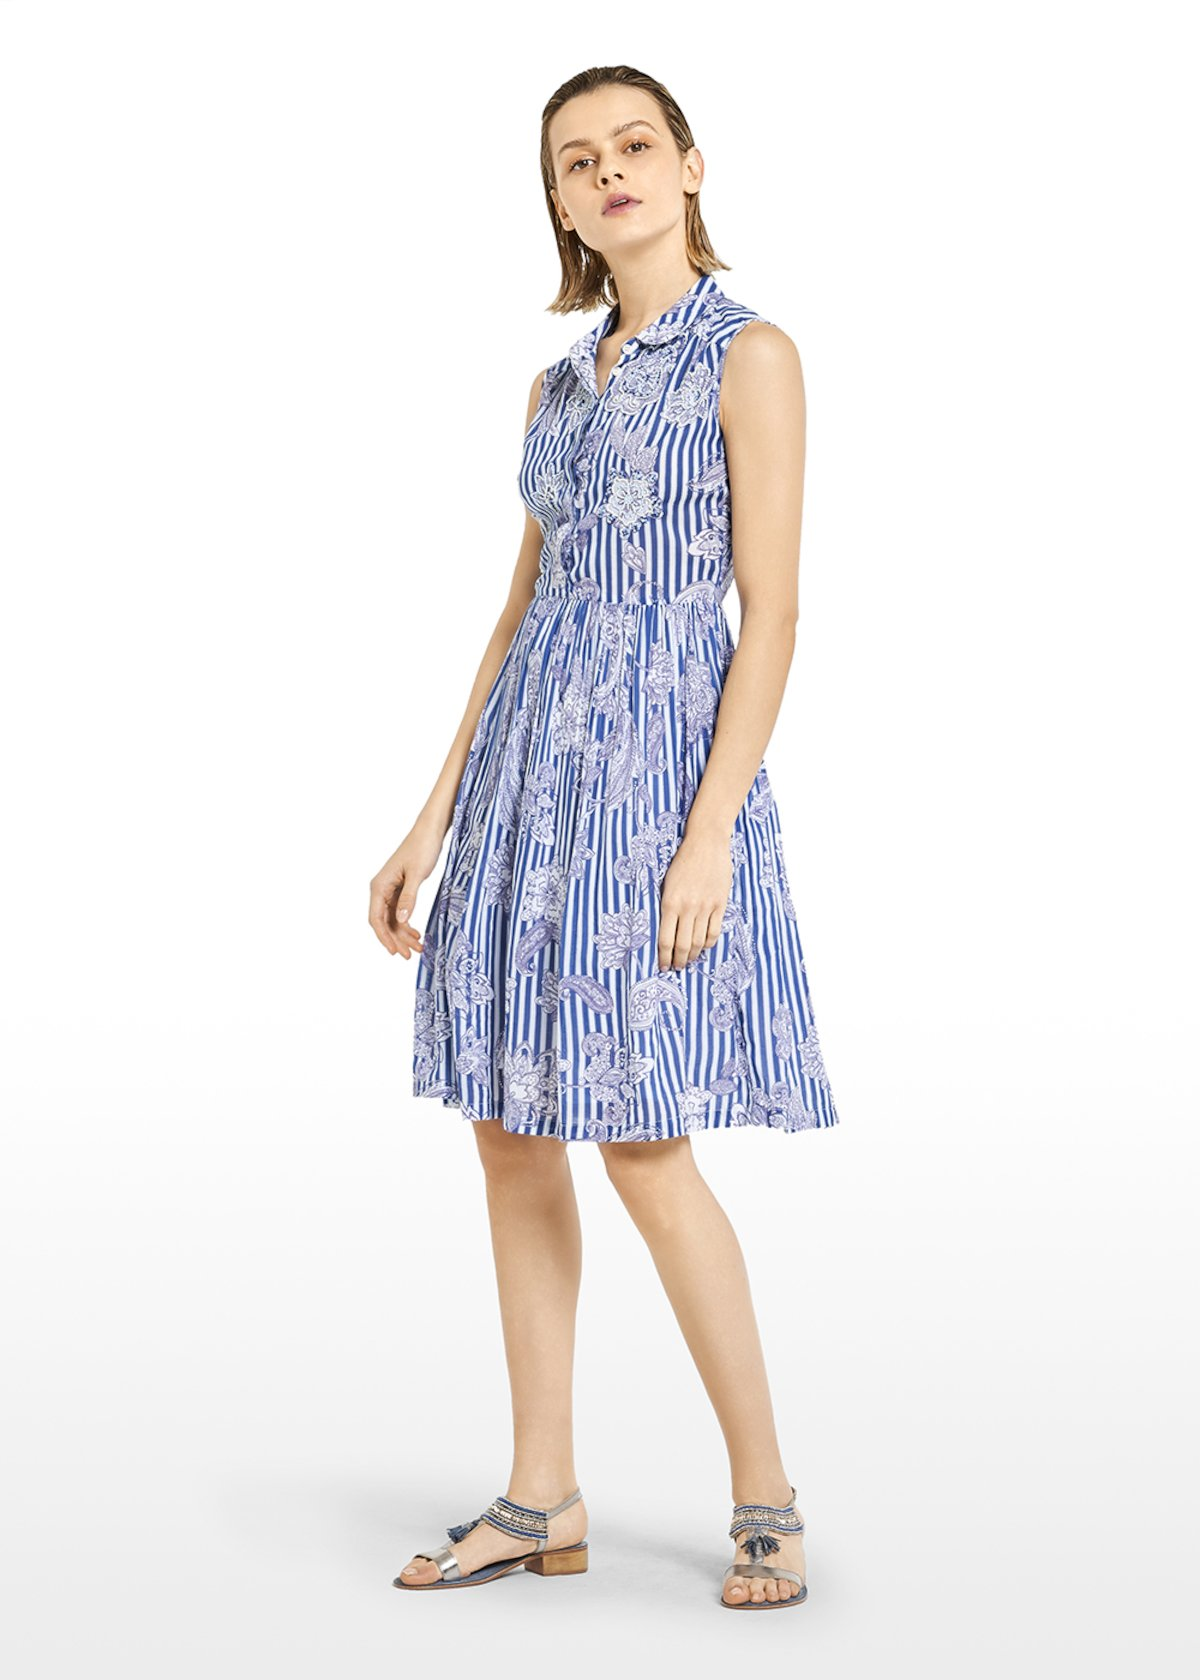 Alain dress in cotton with stripes and paisley